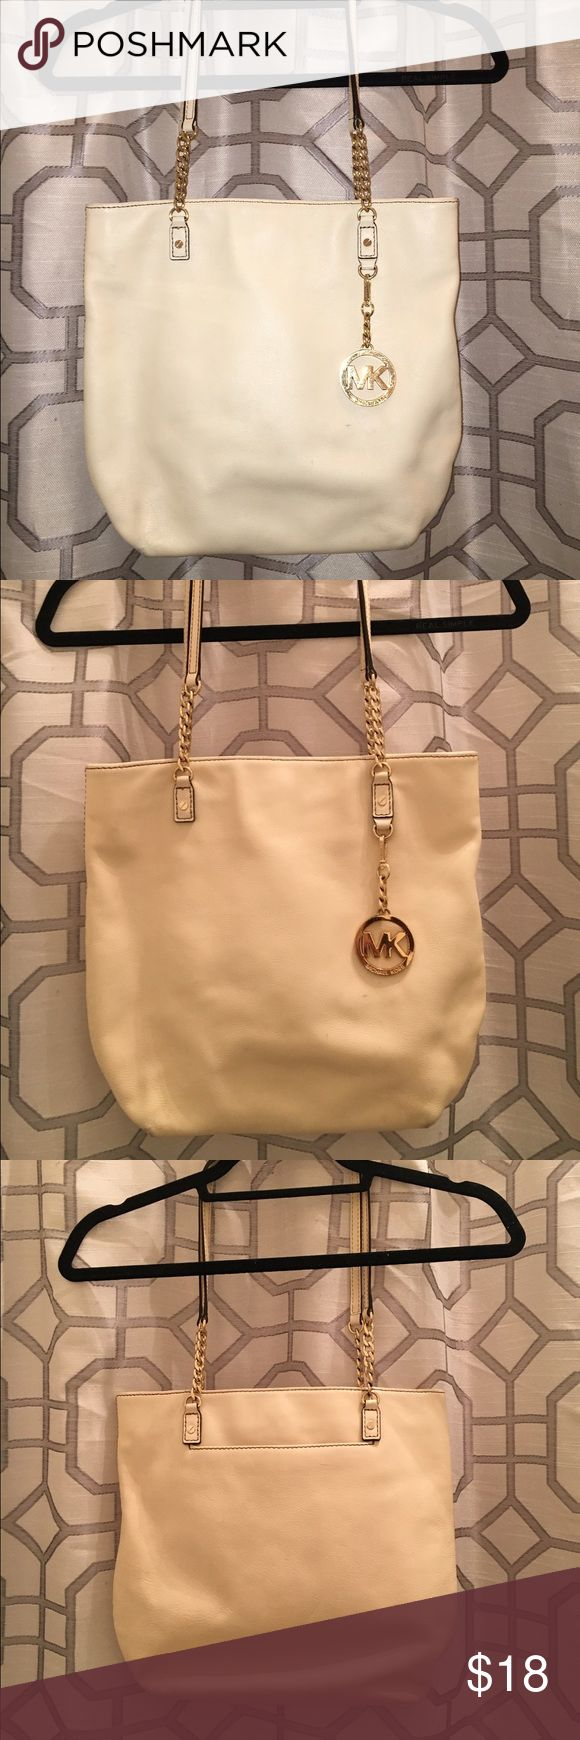 Michael Kors Medium Tote White Michael Kors medium tote. Has a few signs of wear on the bottom. All in all, good shape! Still has a lot of life left in it. ✨ sorry, no trades. Michael Kors Bags Totes